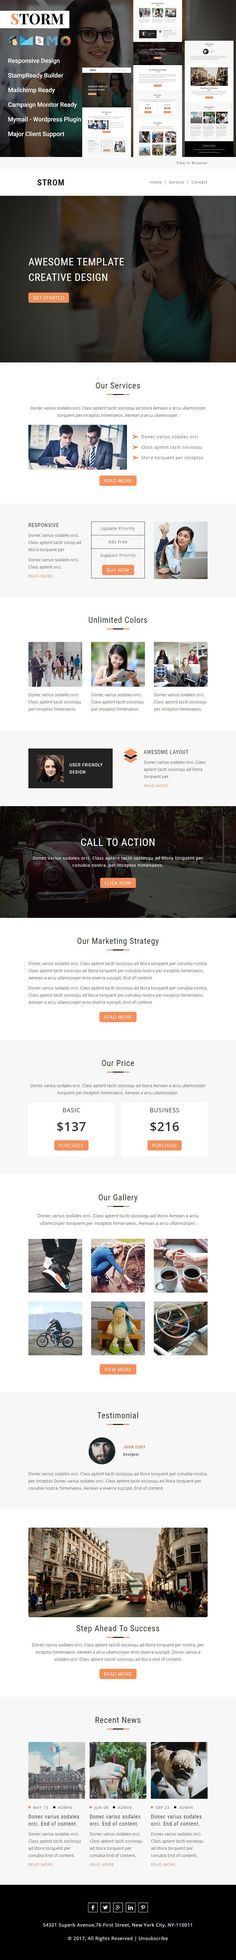 Storm - Responsive email template from pennyblack is beneficial for corporate, business and compatible with StampReady, MailChimp, Campaign Monitor & Mymail. Email Templates, Newsletter Templates, Mail Chimp Templates, Campaign Monitor, Responsive Email, Photoshop Plugins, Email Client, Google Fonts, Wordpress Plugins